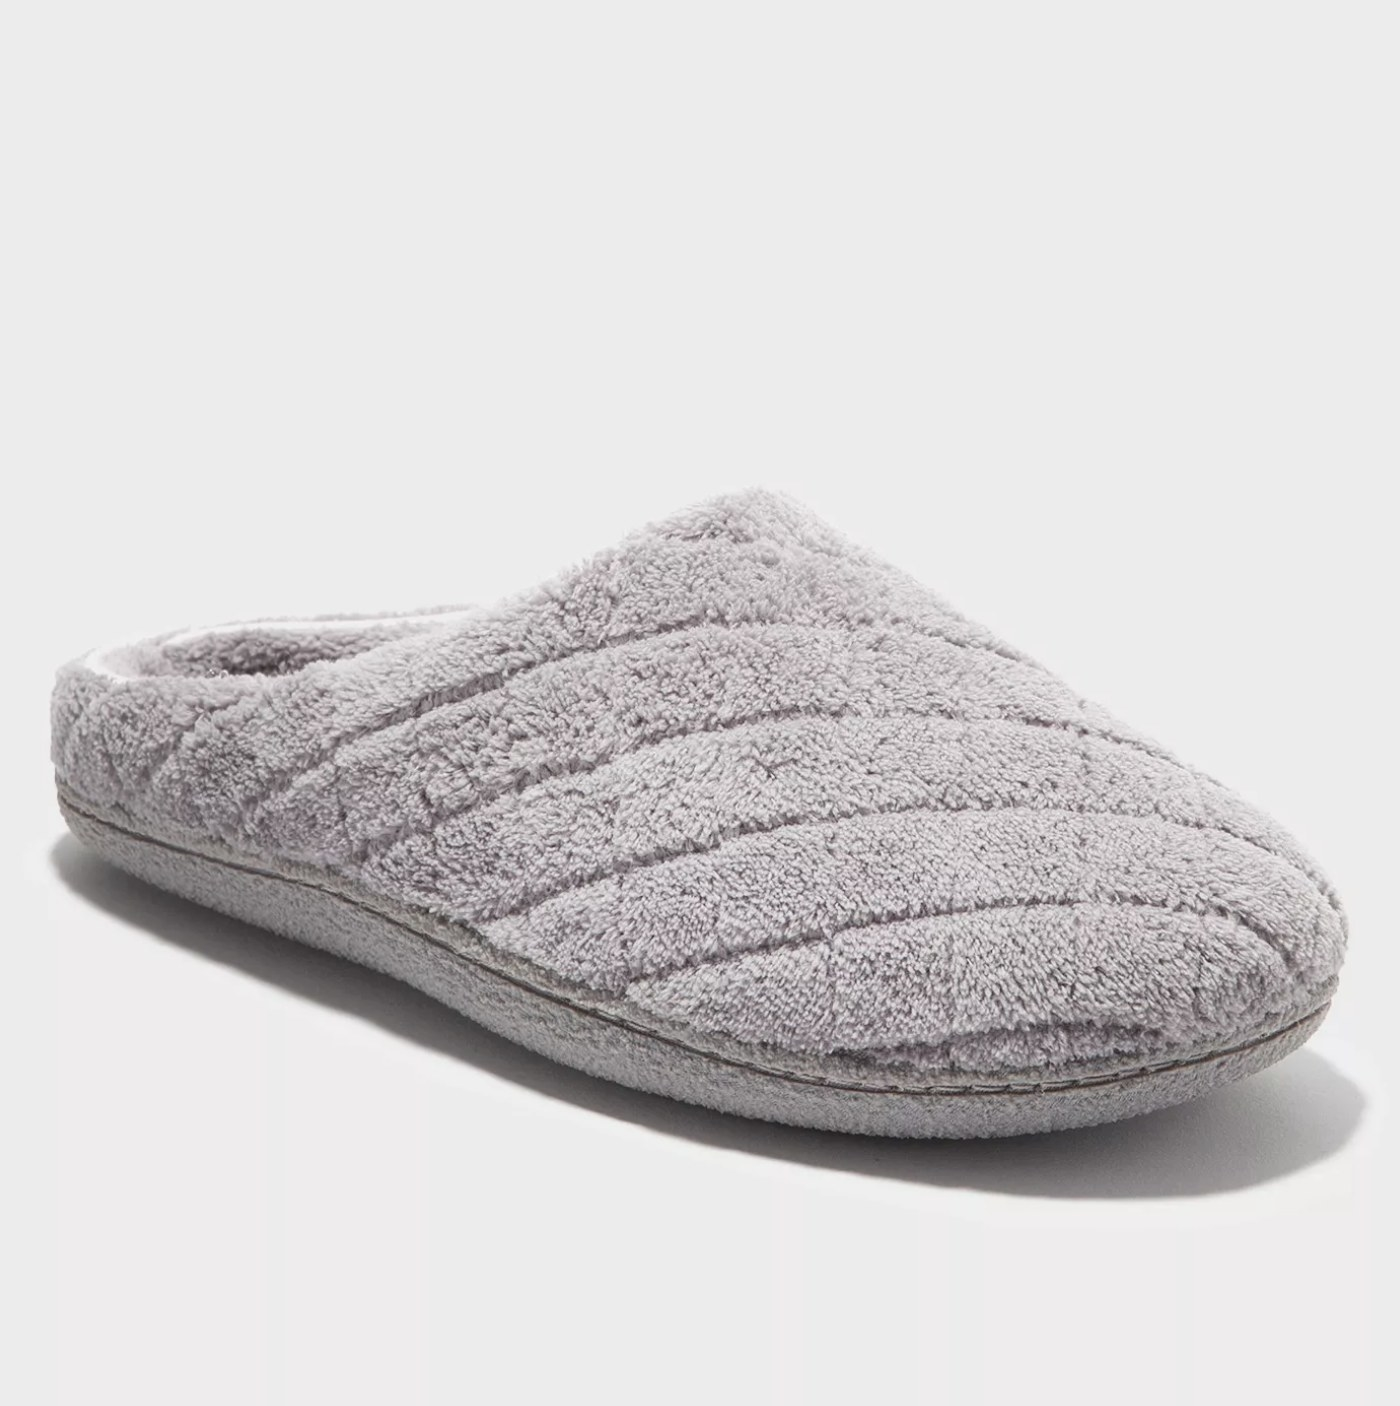 A light grey slipper with a quilted pattern